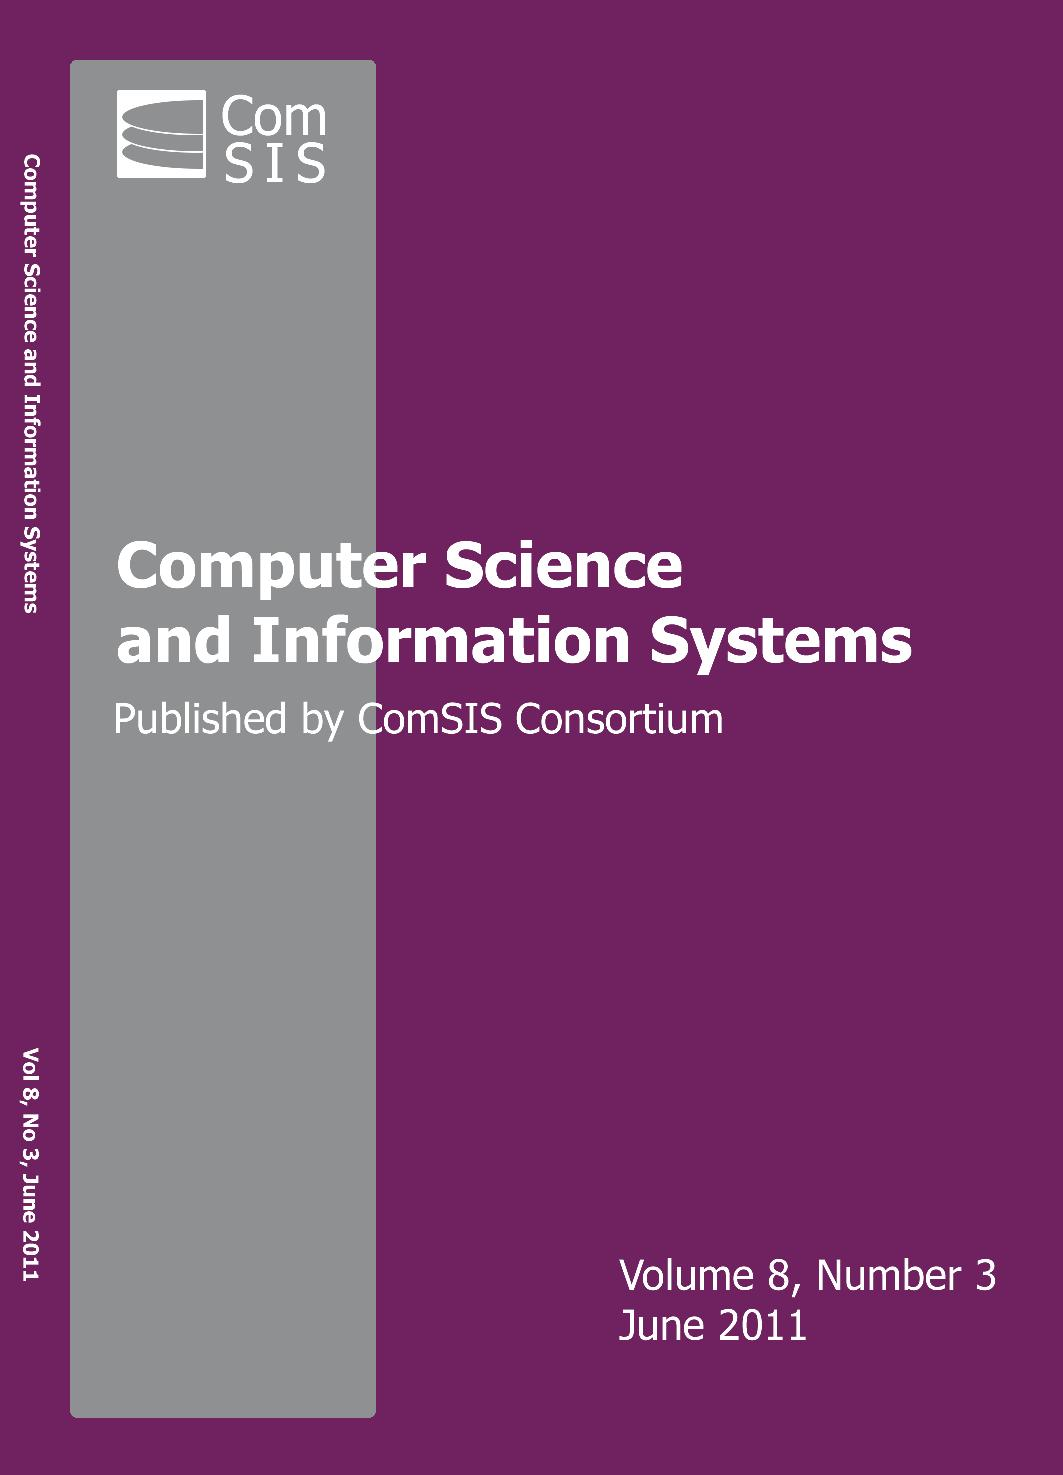 computers and information systems Computer information systems is a growing field that allows graduates to work with companies' it systems, analyze issues within the systems, and ensure all systems are kept up to date and working well.